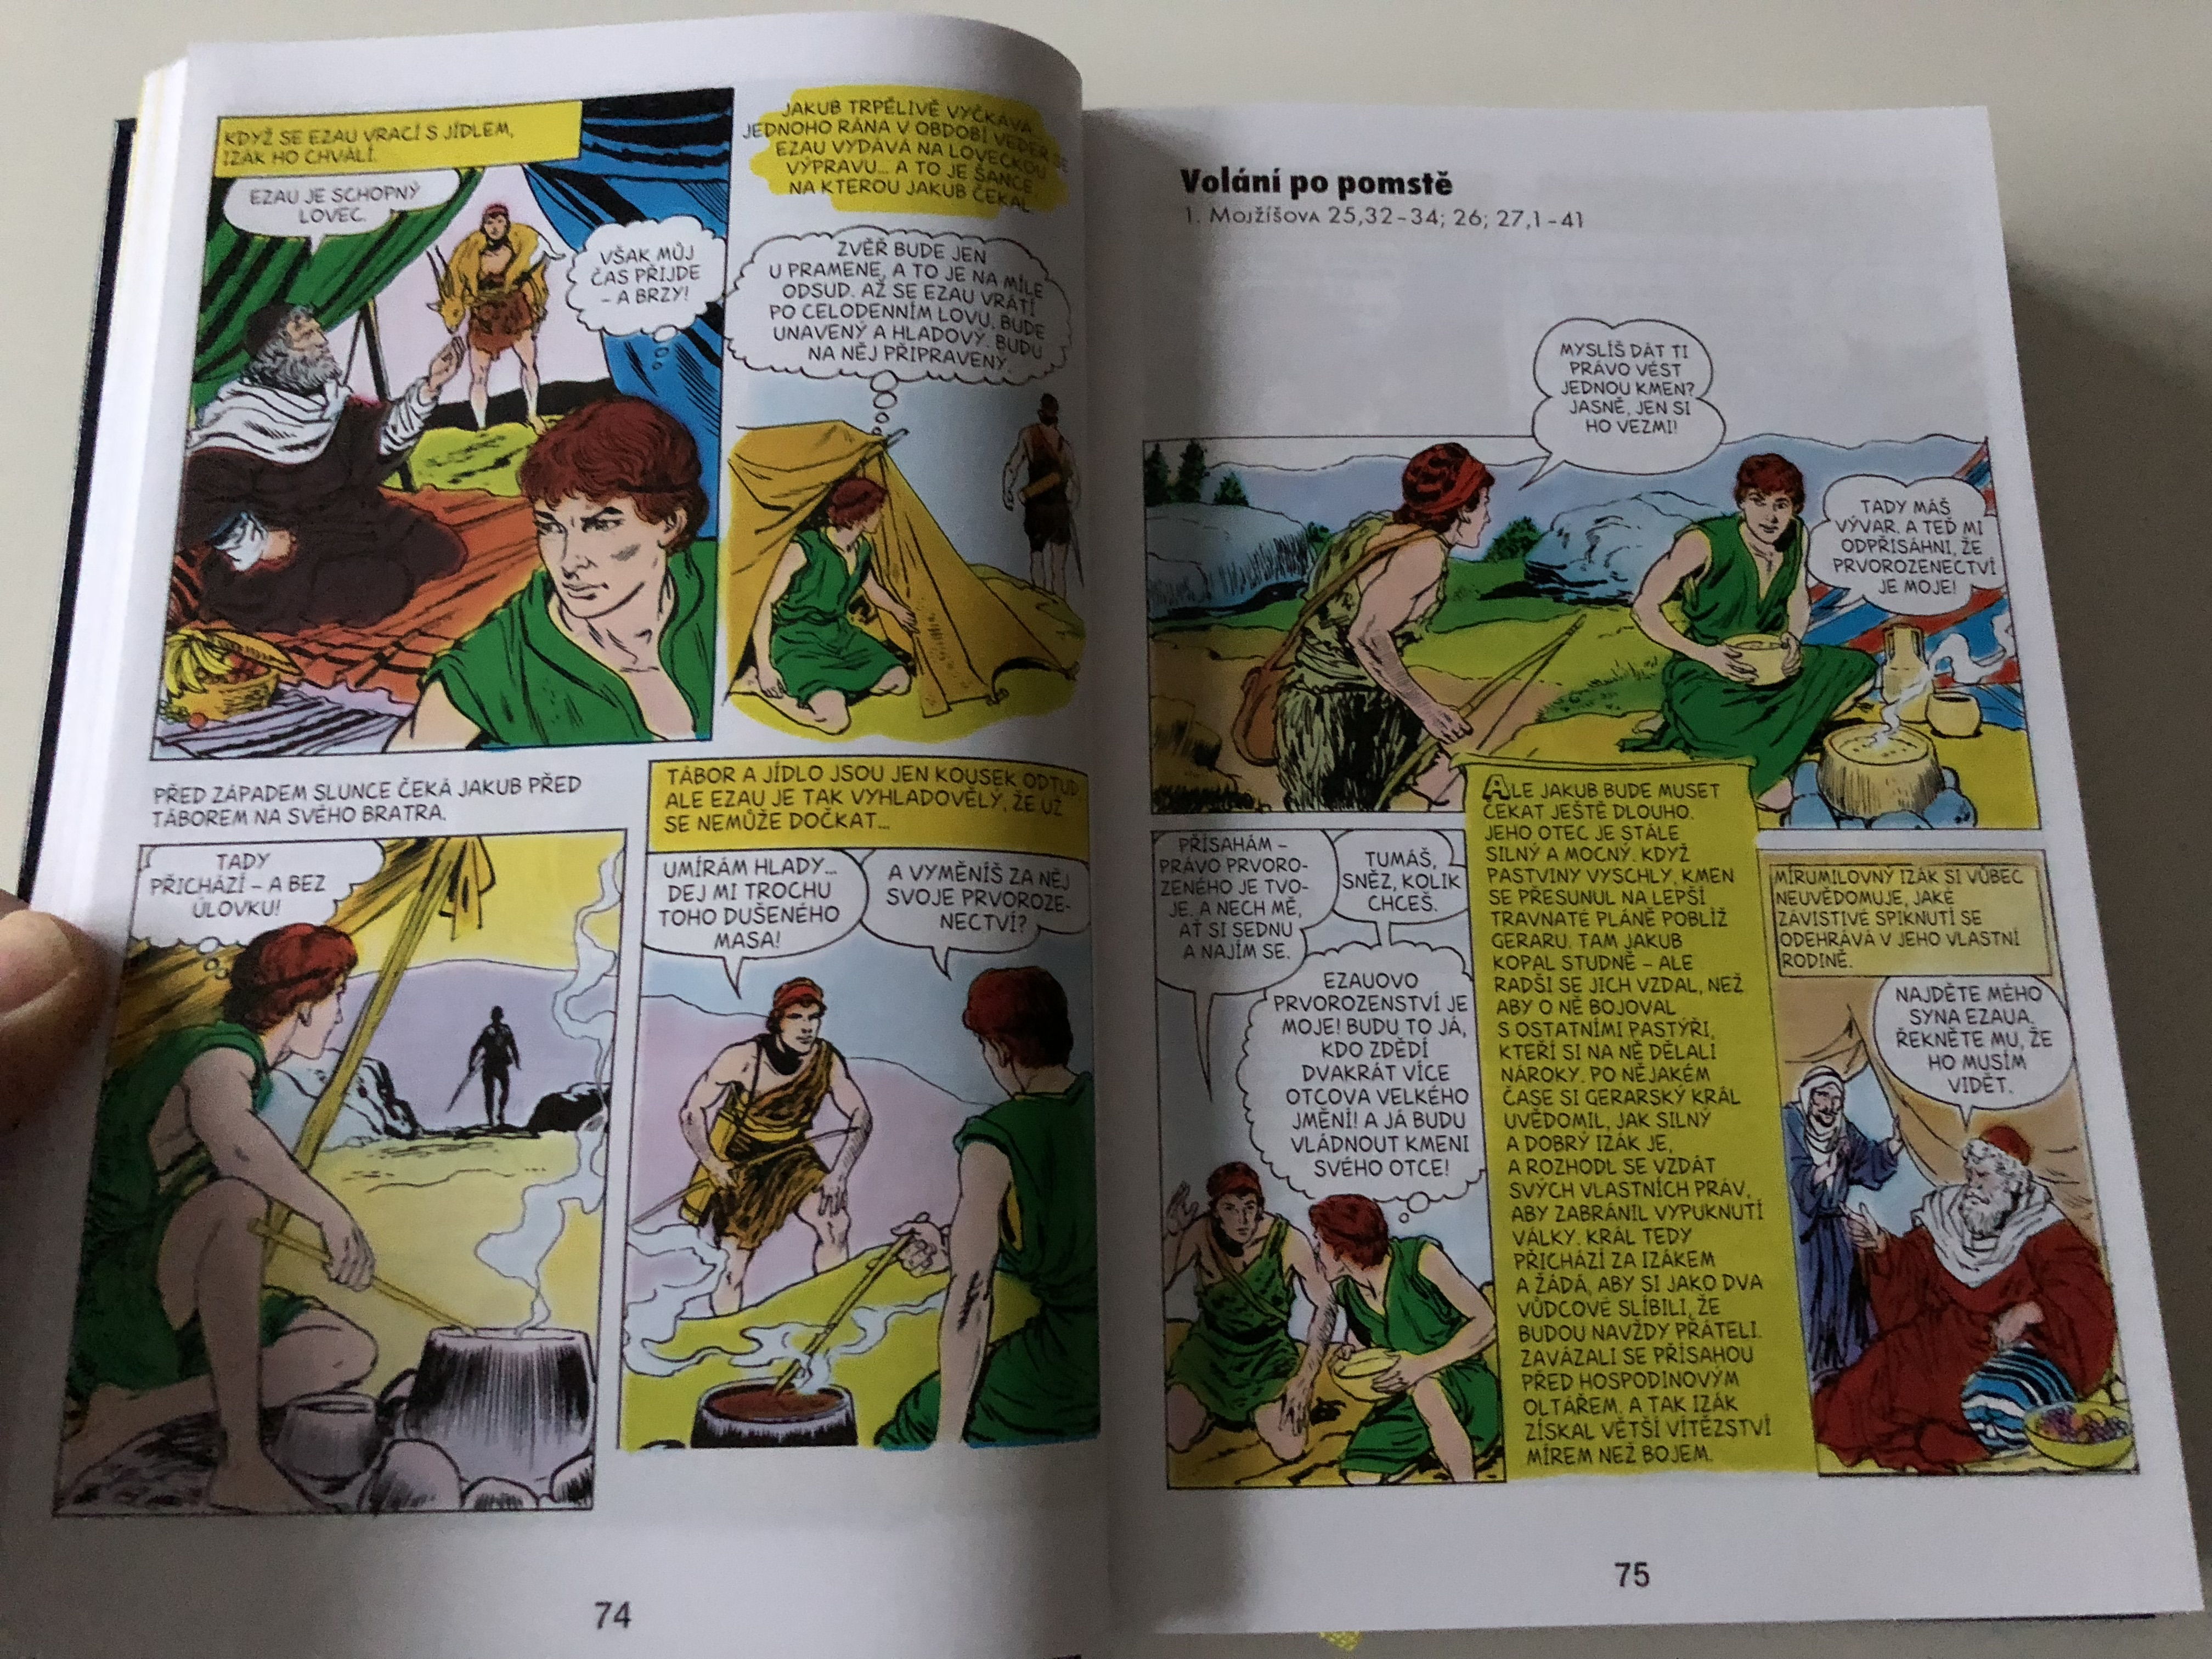 komiksov-bible-czech-edition-of-the-picture-bible-from-david-c.-cook-publishing-czech-language-bible-comic-for-children-and-teenagers-hardcover-2014-8-.jpg